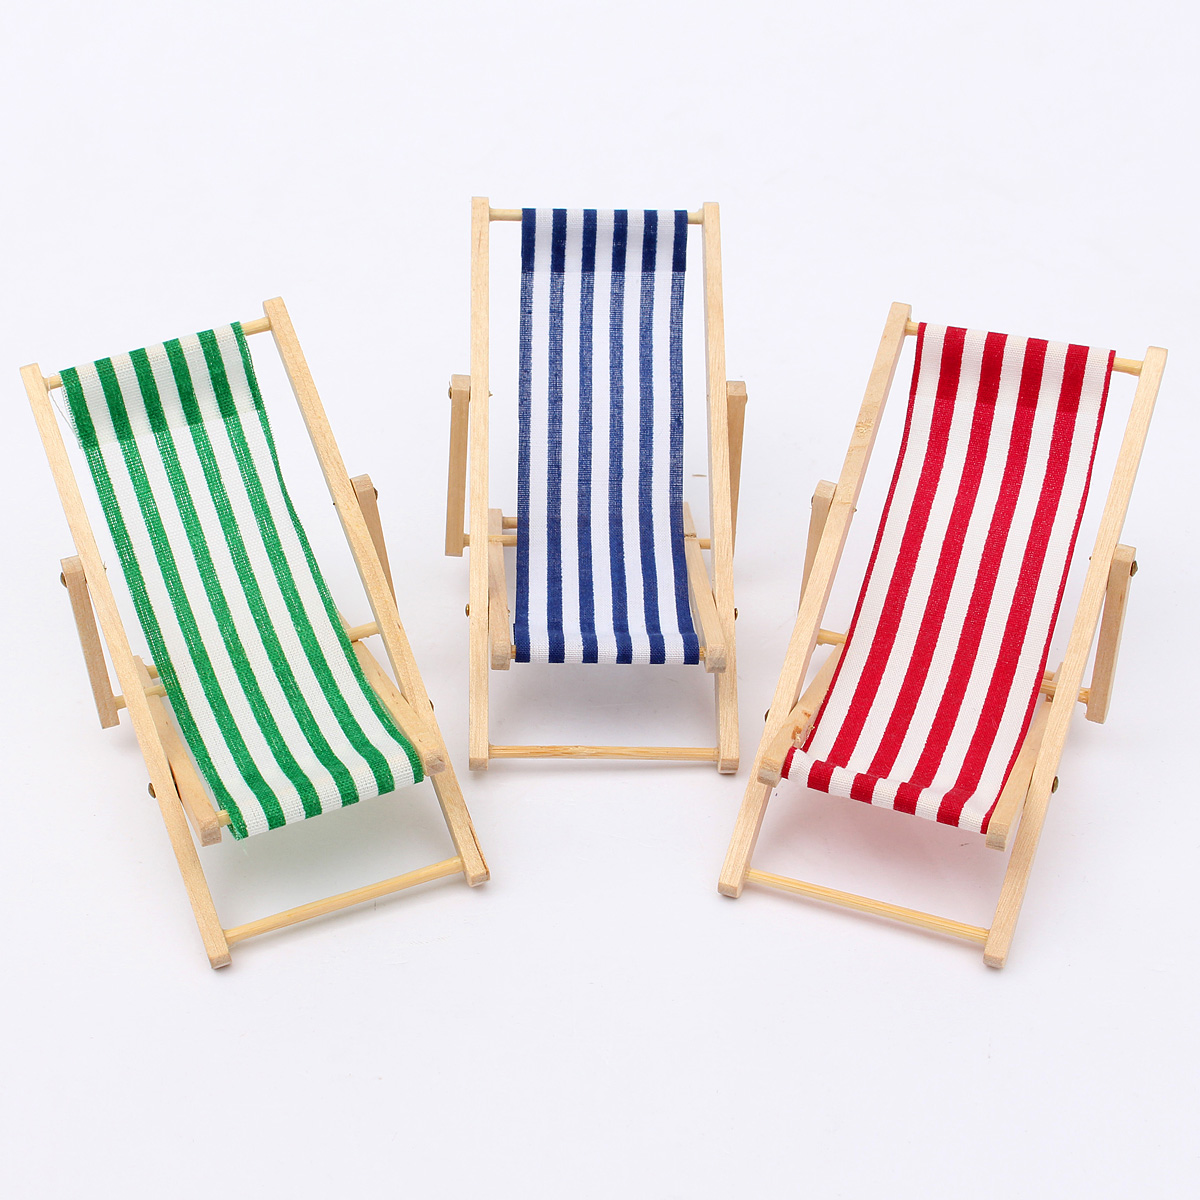 mini beach chair picture frames meditation chairs for sale new diy dolls house 1 12 miniature foldable wooden